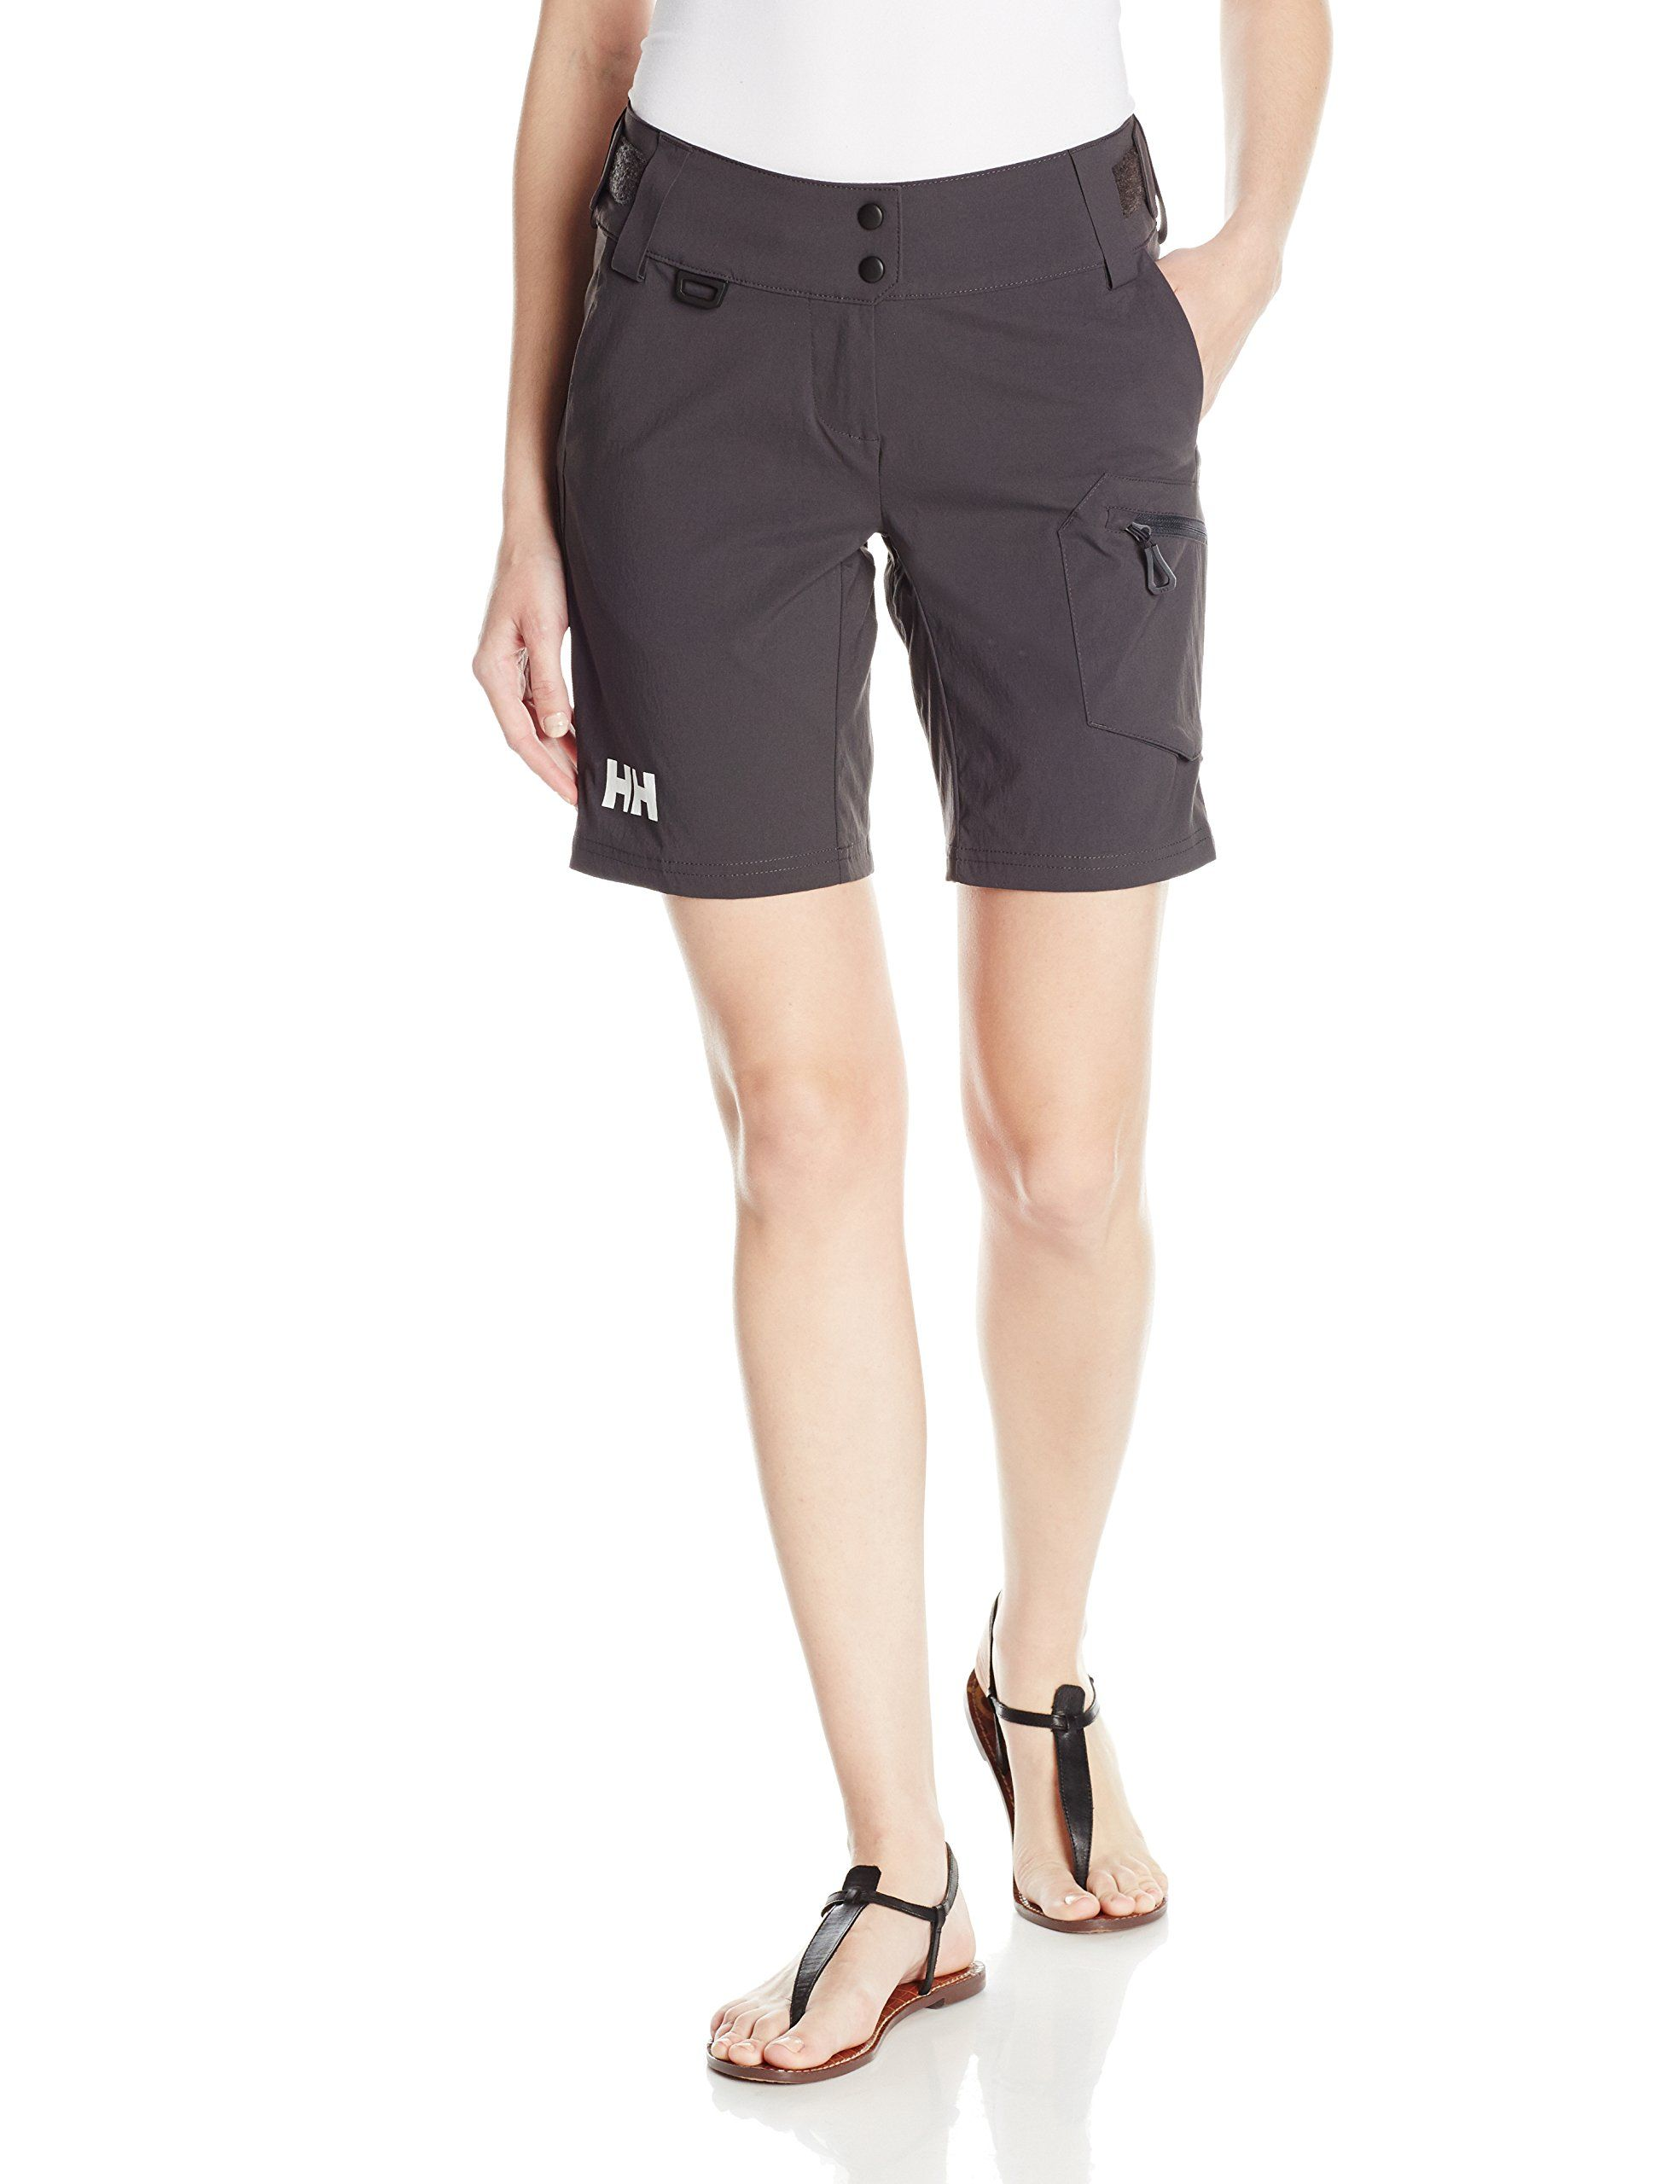 845c0f2cda2 Helly Hansen Womens Crew Dynamic Shorts Ebony Size 32 >>> Check out the  image by visiting the link. (This is an affiliate link) #WomensActivewear